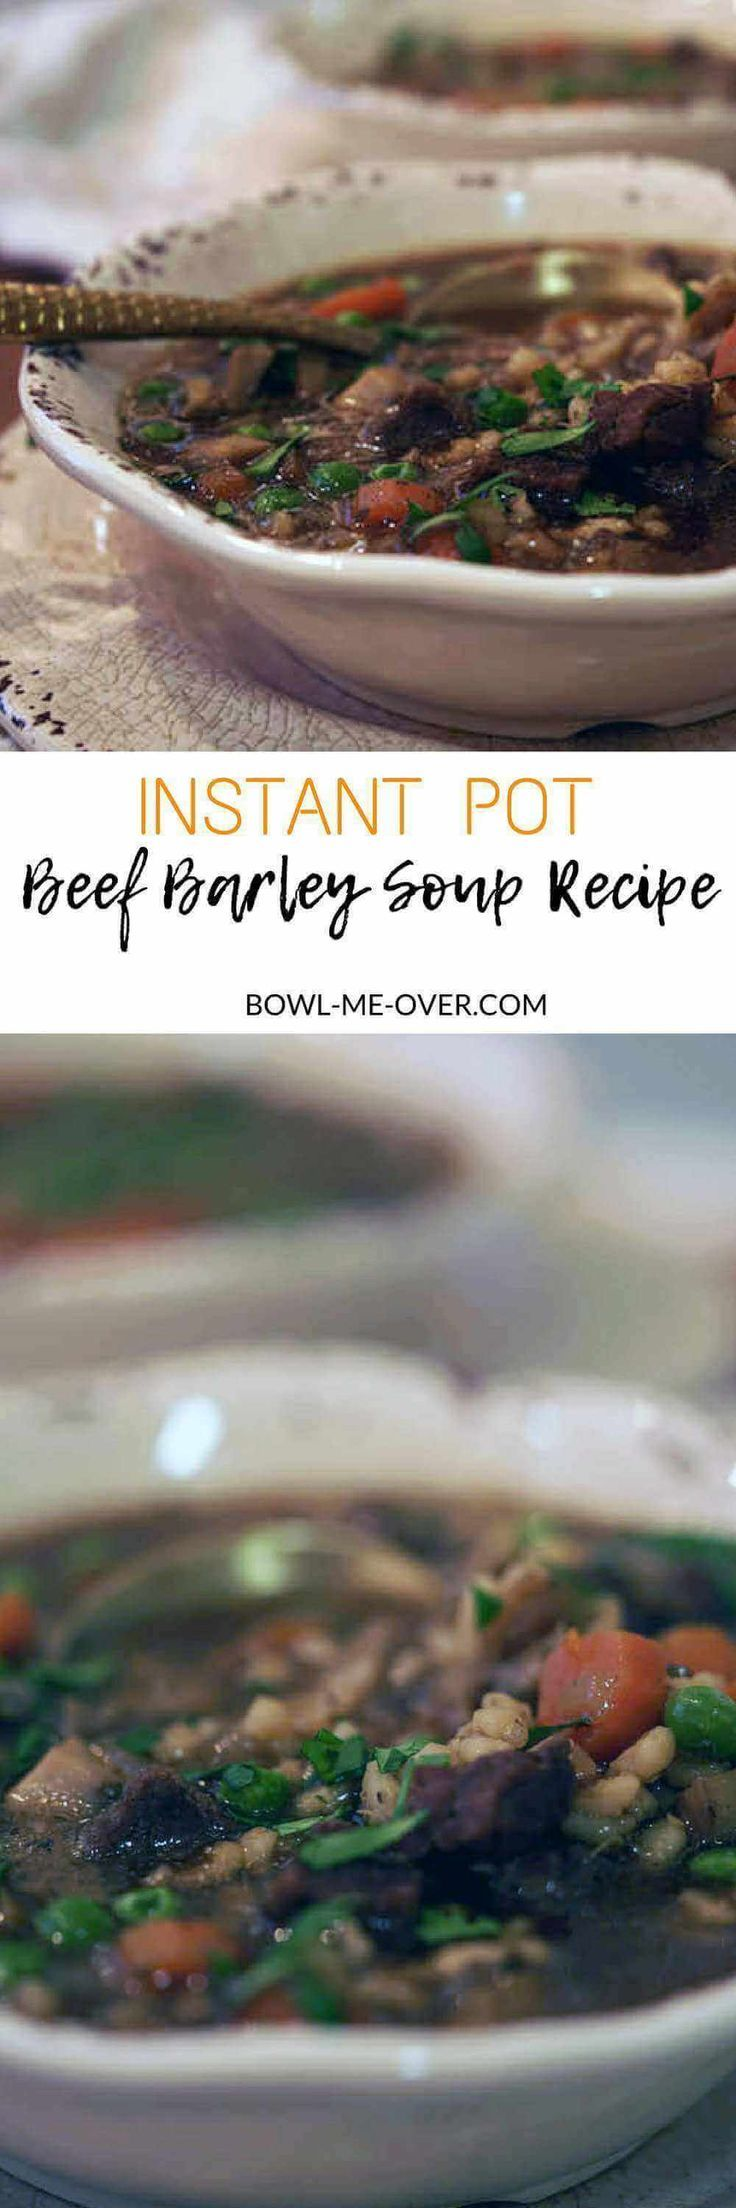 If you love slowly simmered tender beef, barley and vegetables, this Beef Barley Soup Recipe will give you all the flavor in less than an hour! This is a big beefy soup loaded with plump barley and tender vegetables. It's a delicious soup that is made in your Instant Pot or pressure cooker.   via @bowlmeover